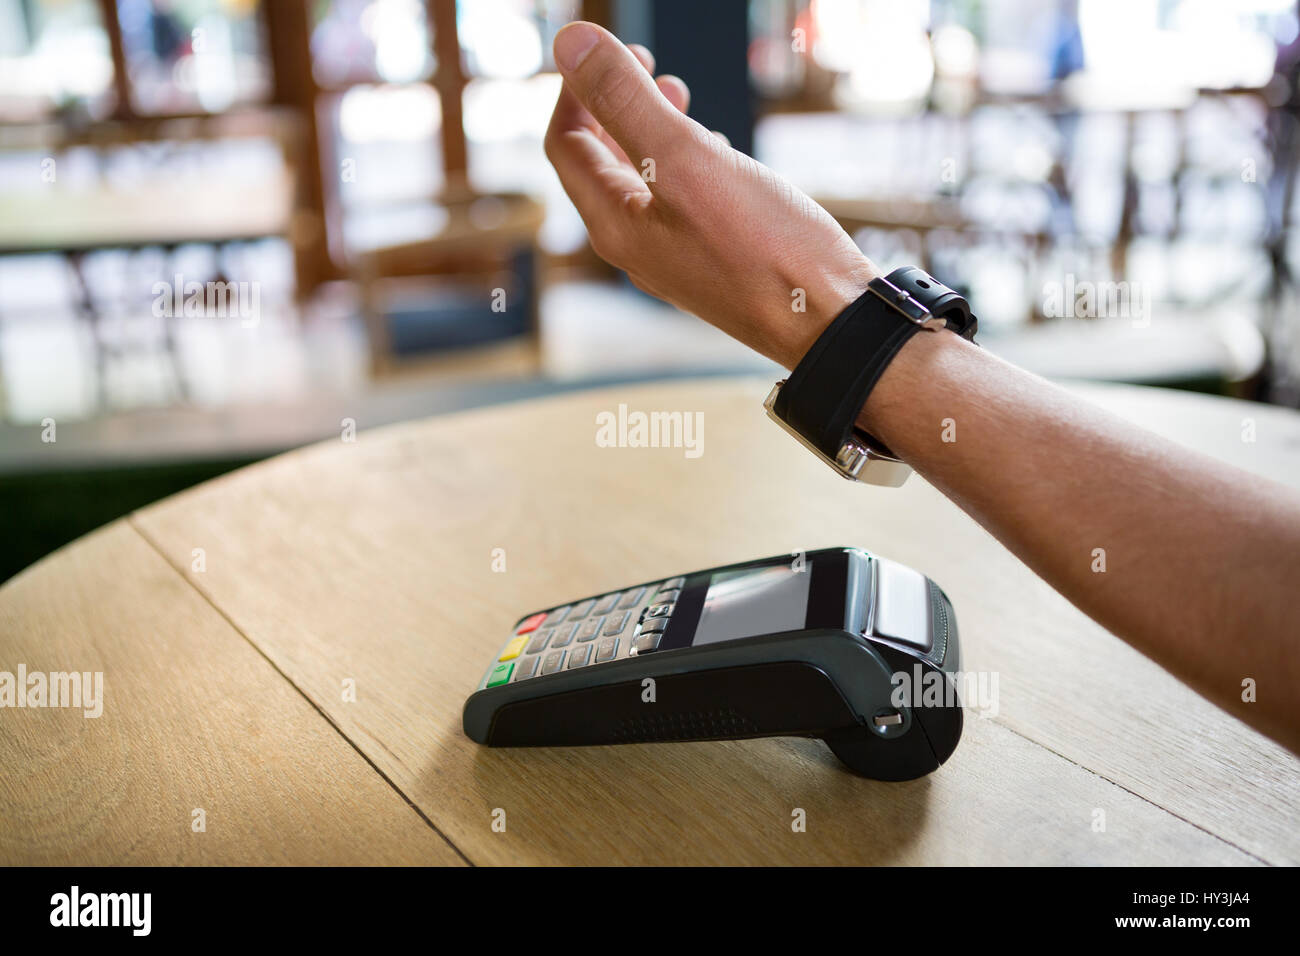 Cropped image of man hand using smart watch to express pay in coffee shop - Stock Image